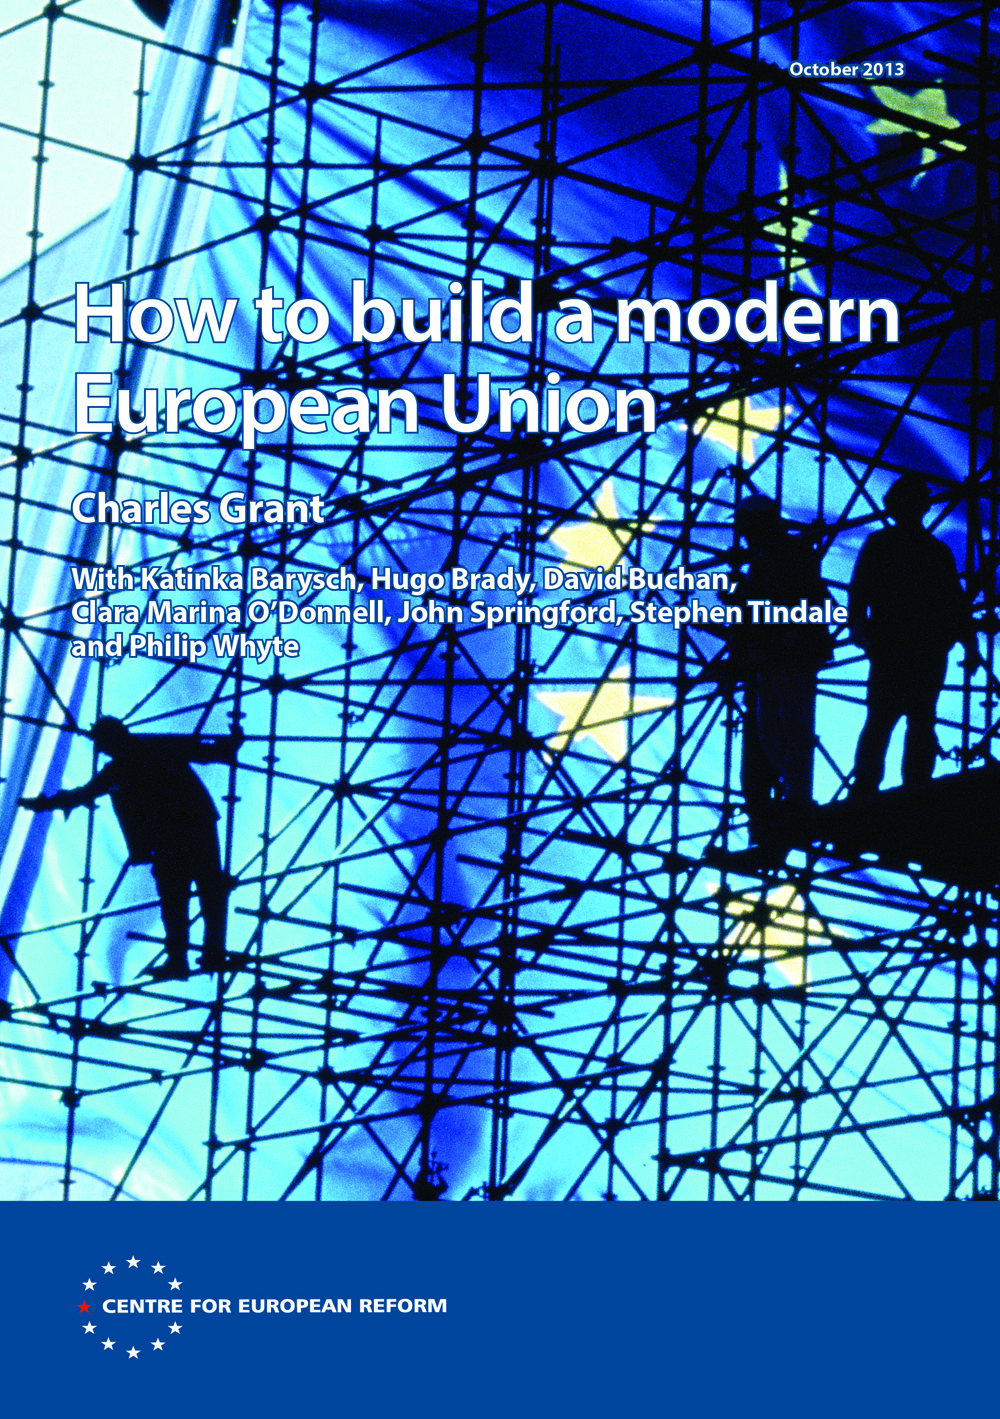 How to build a modern European Union